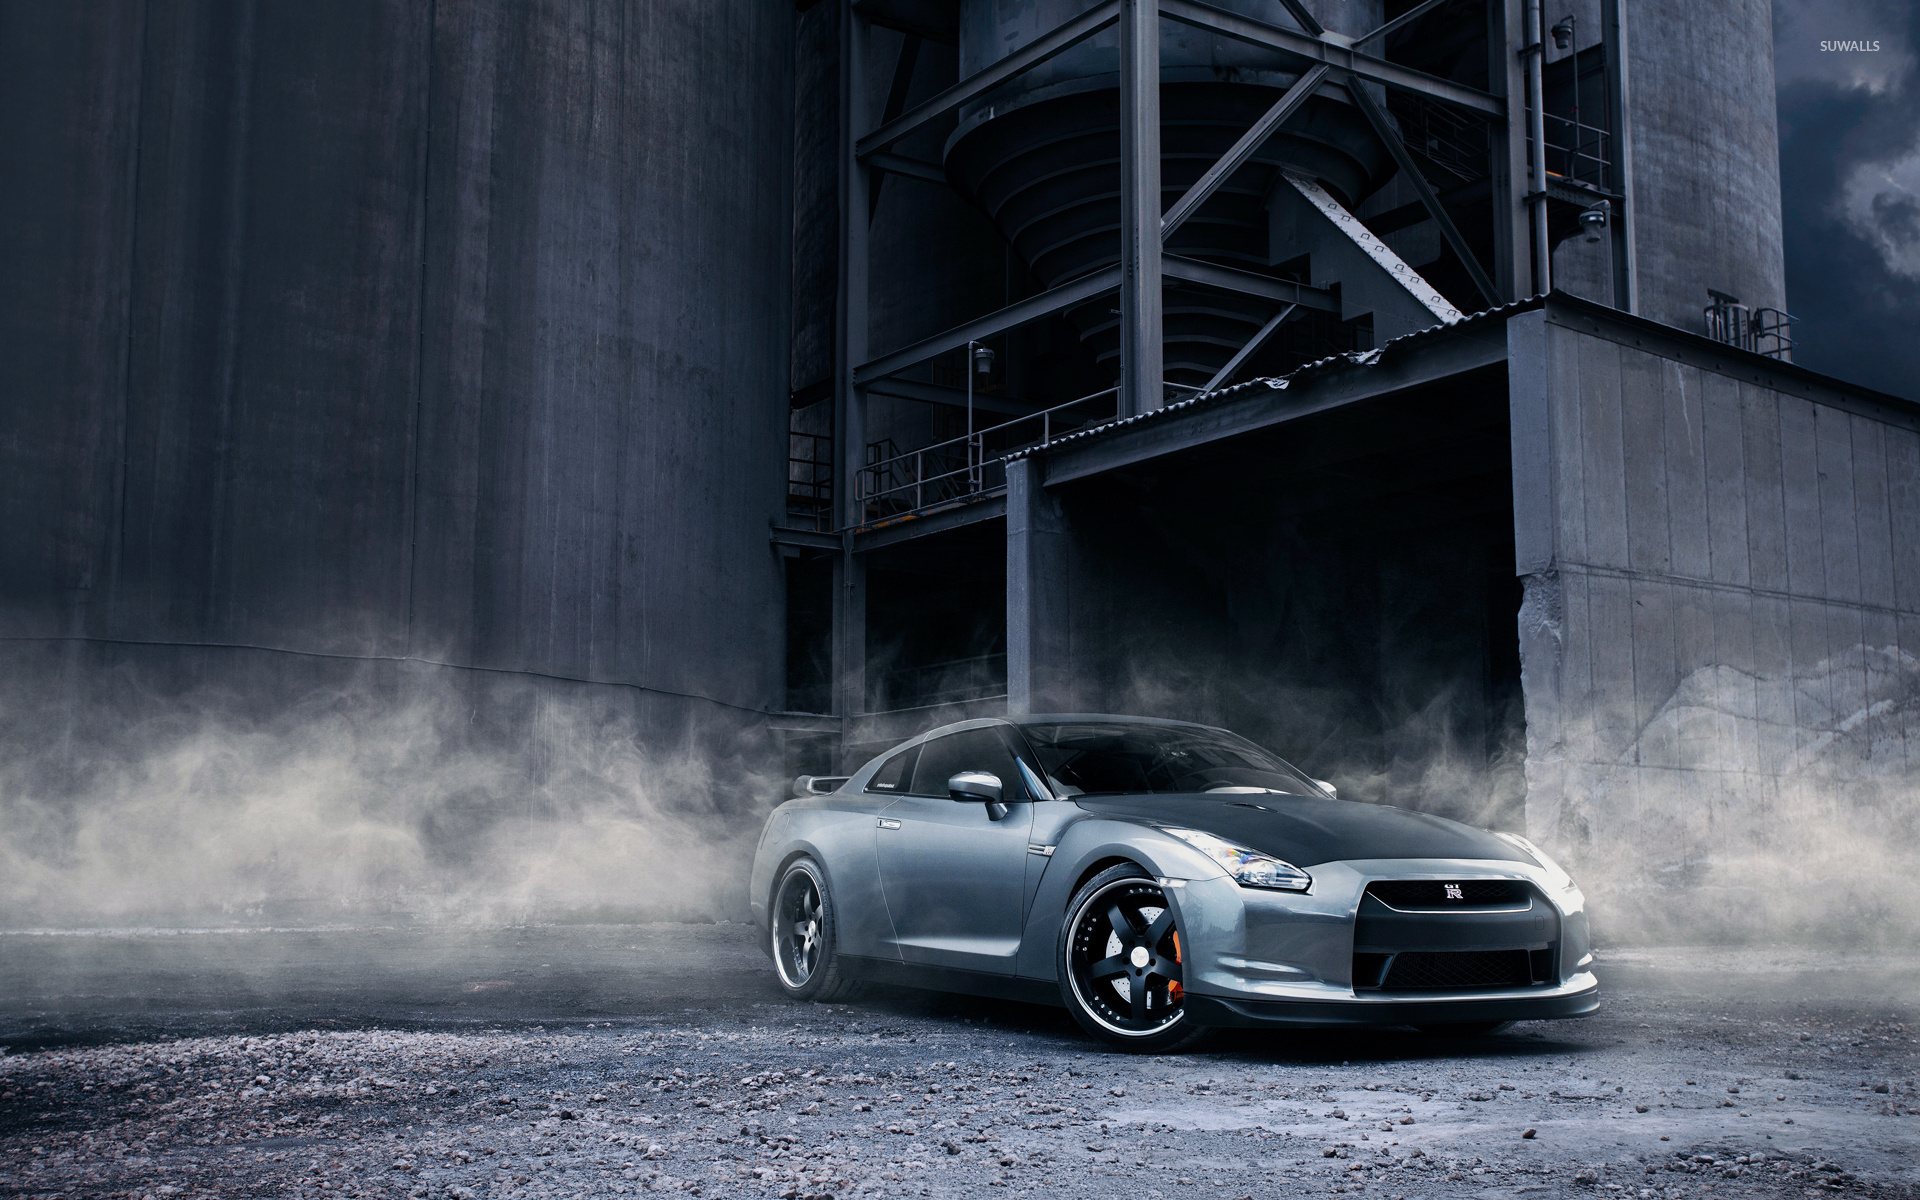 Nissan Gt R 9 Wallpaper Car Wallpapers 35135